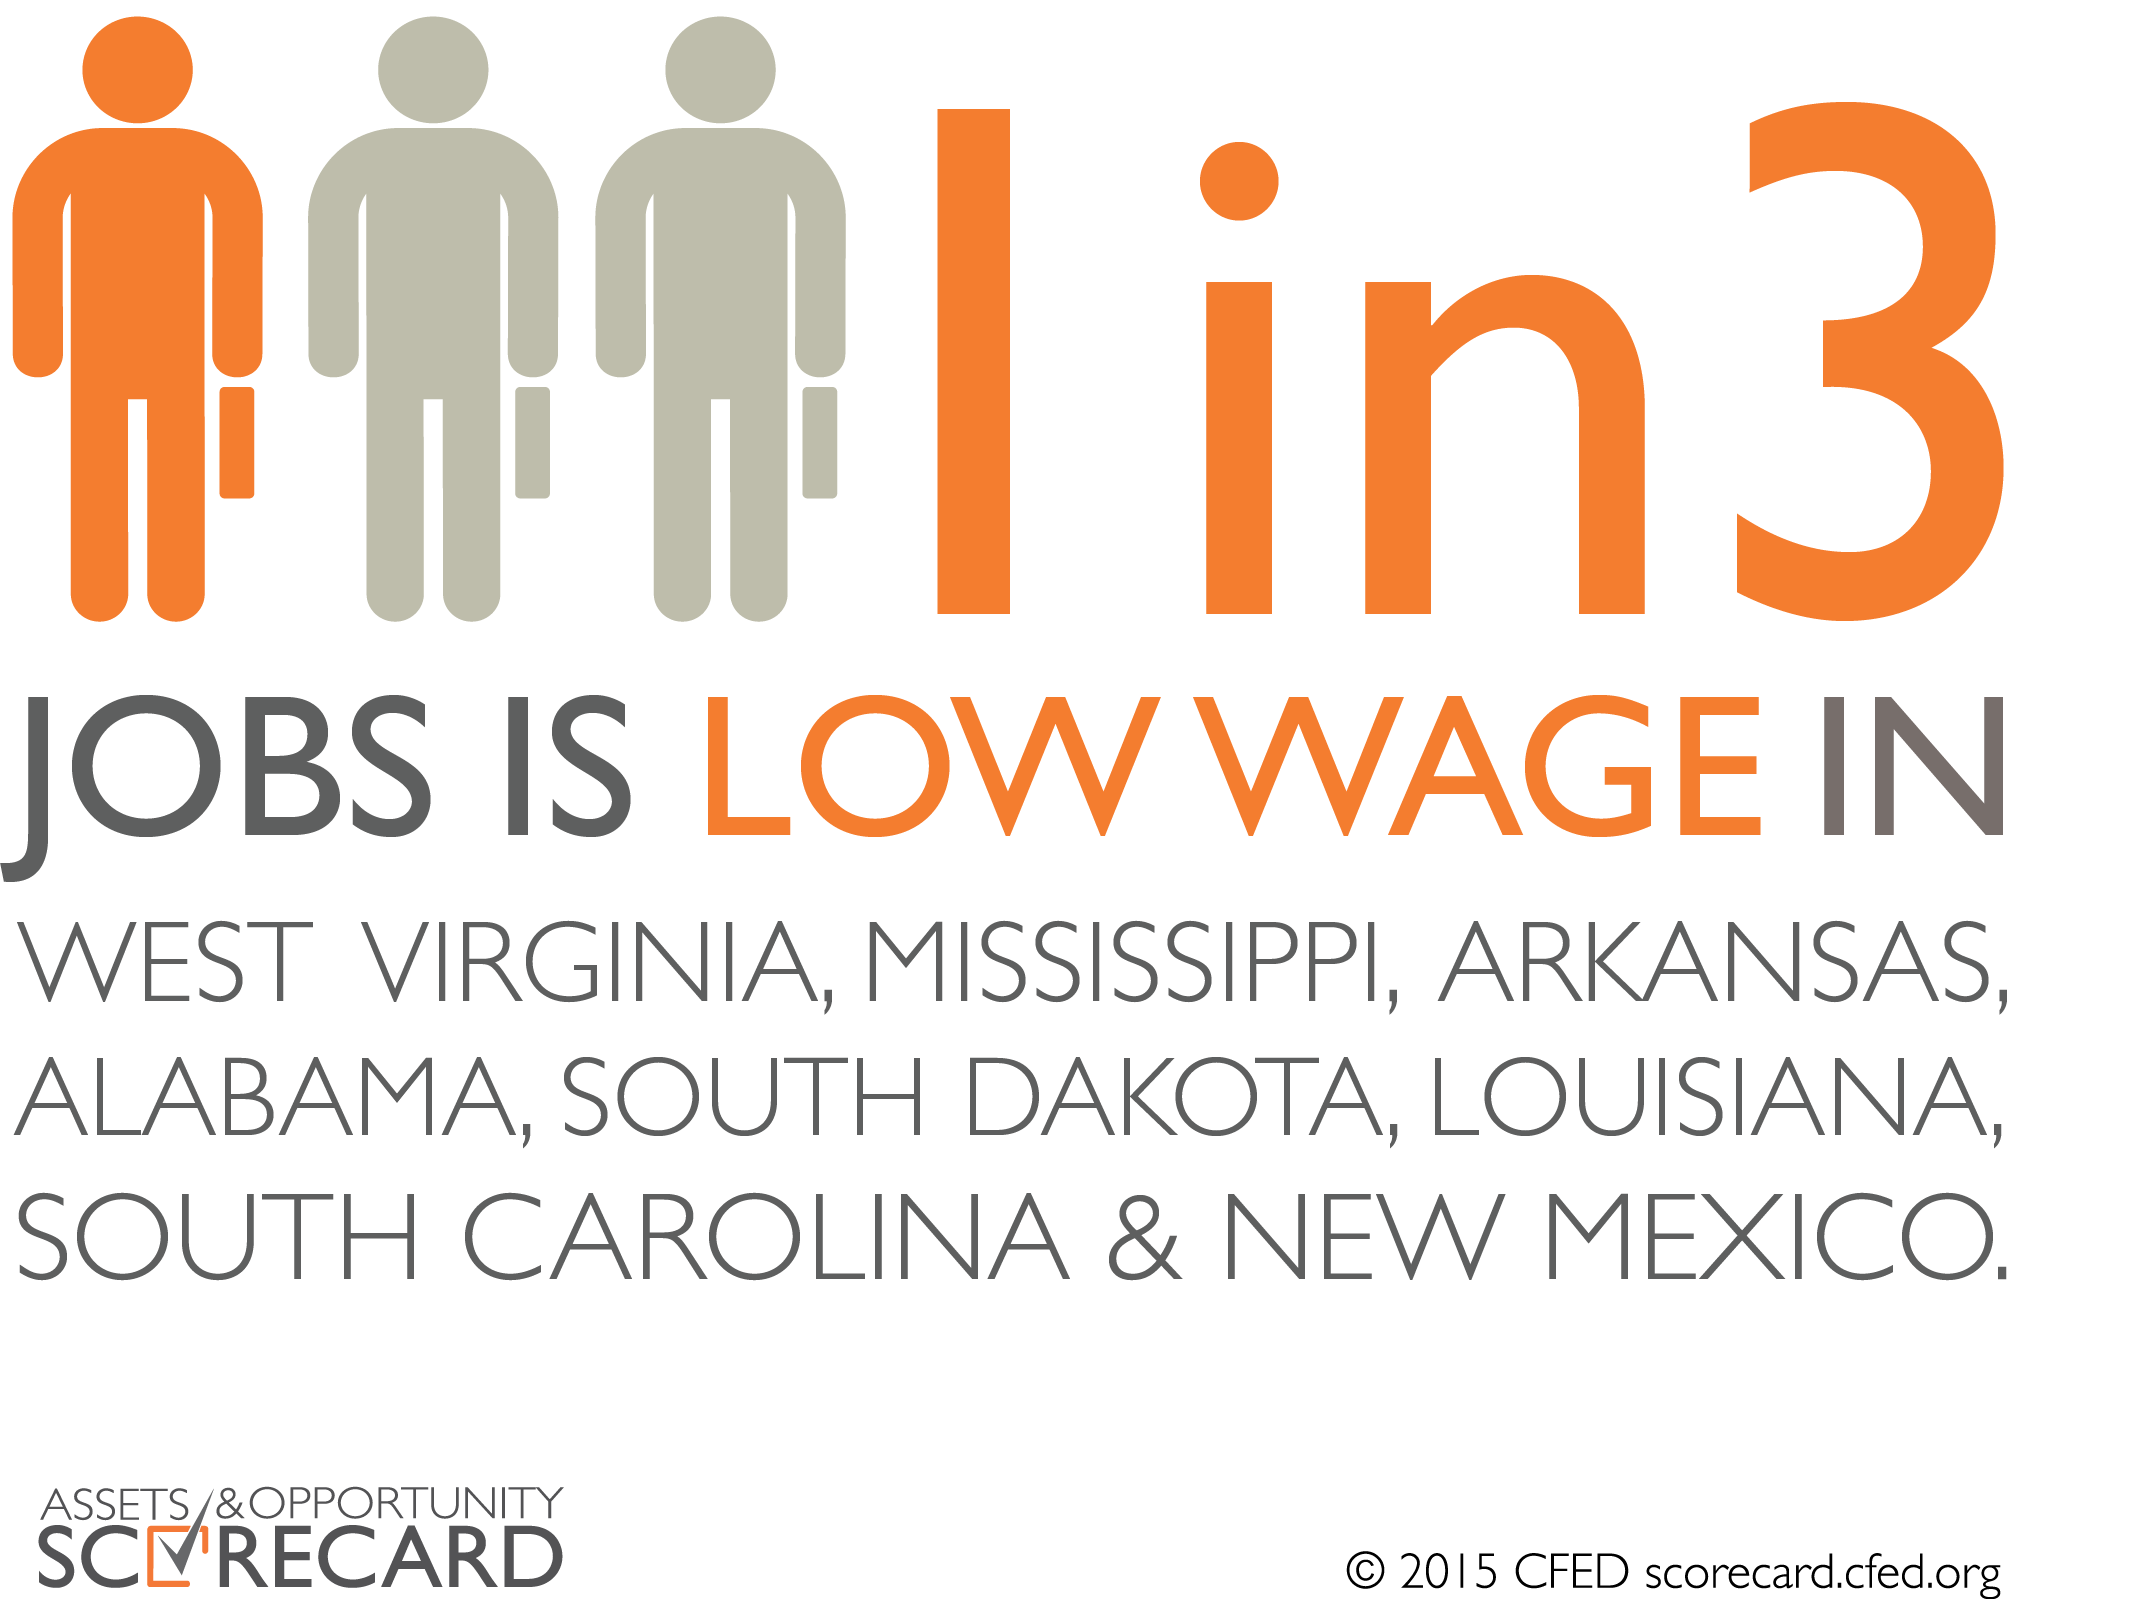 mississippi continues to struggle job growth and quality bottomlowwagejobsstates the numbers of low wage jobs increased